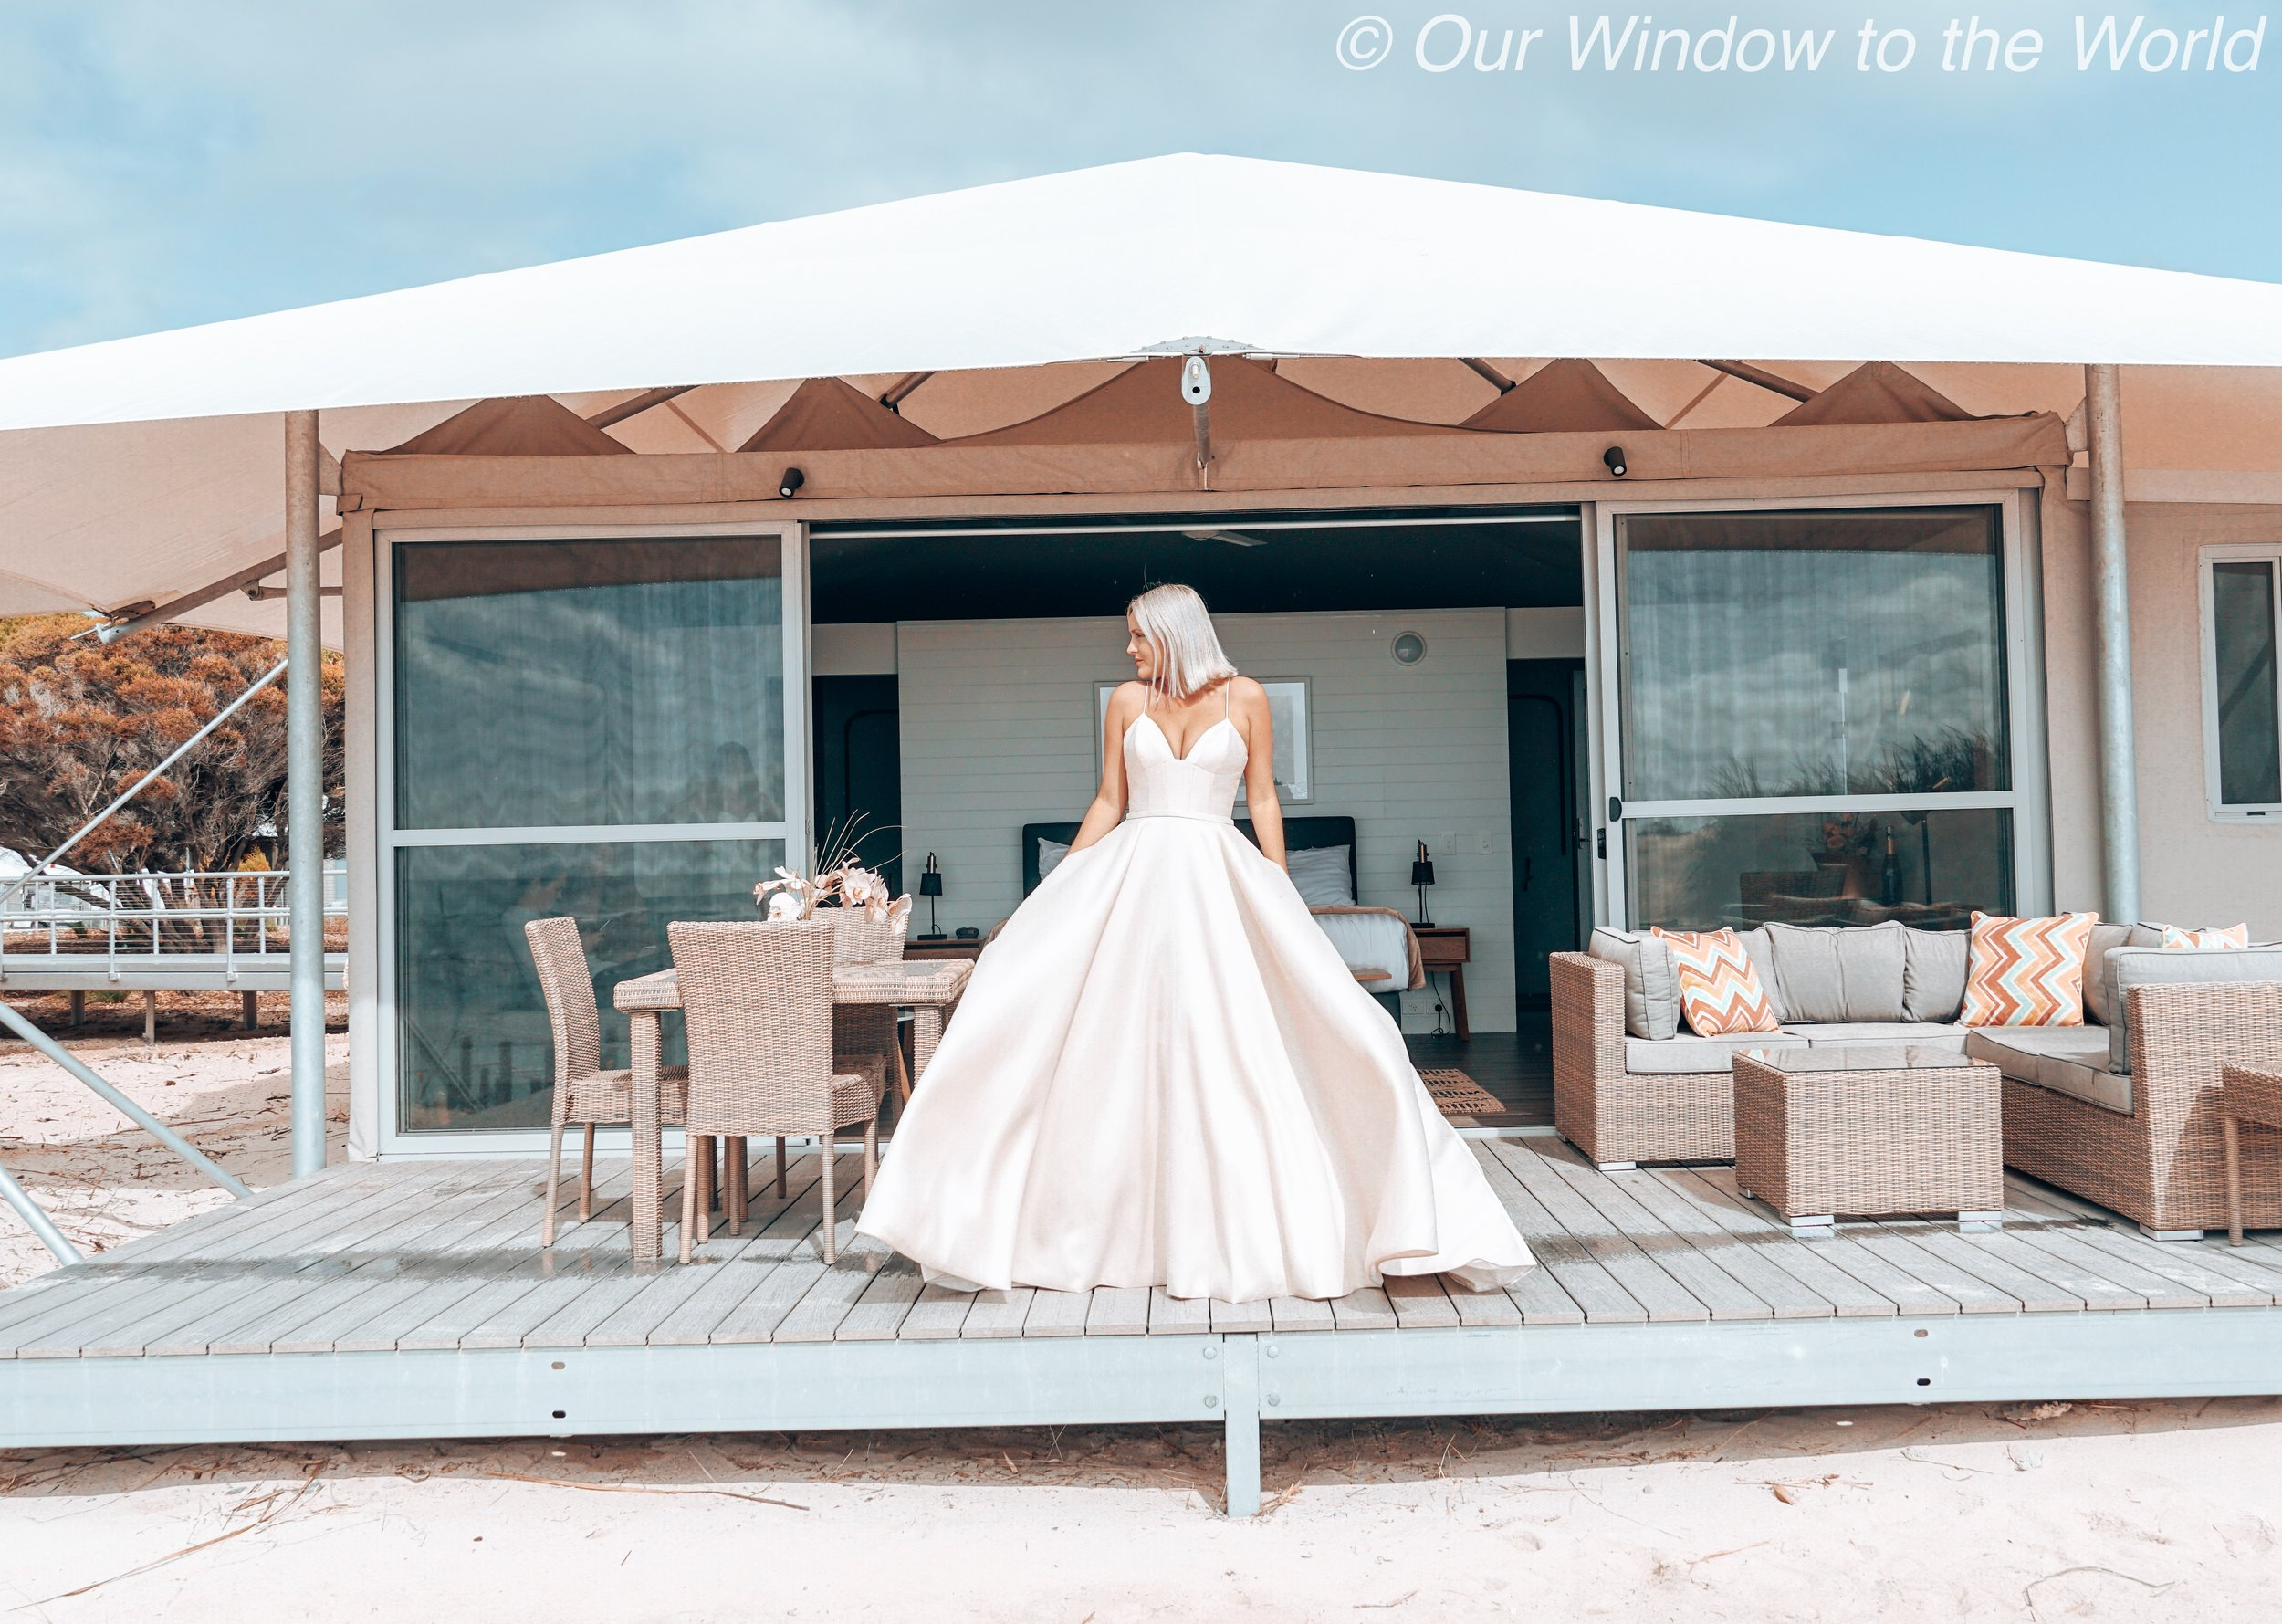 Photography: Our window to the world. Location: Discovery Rottnest Island